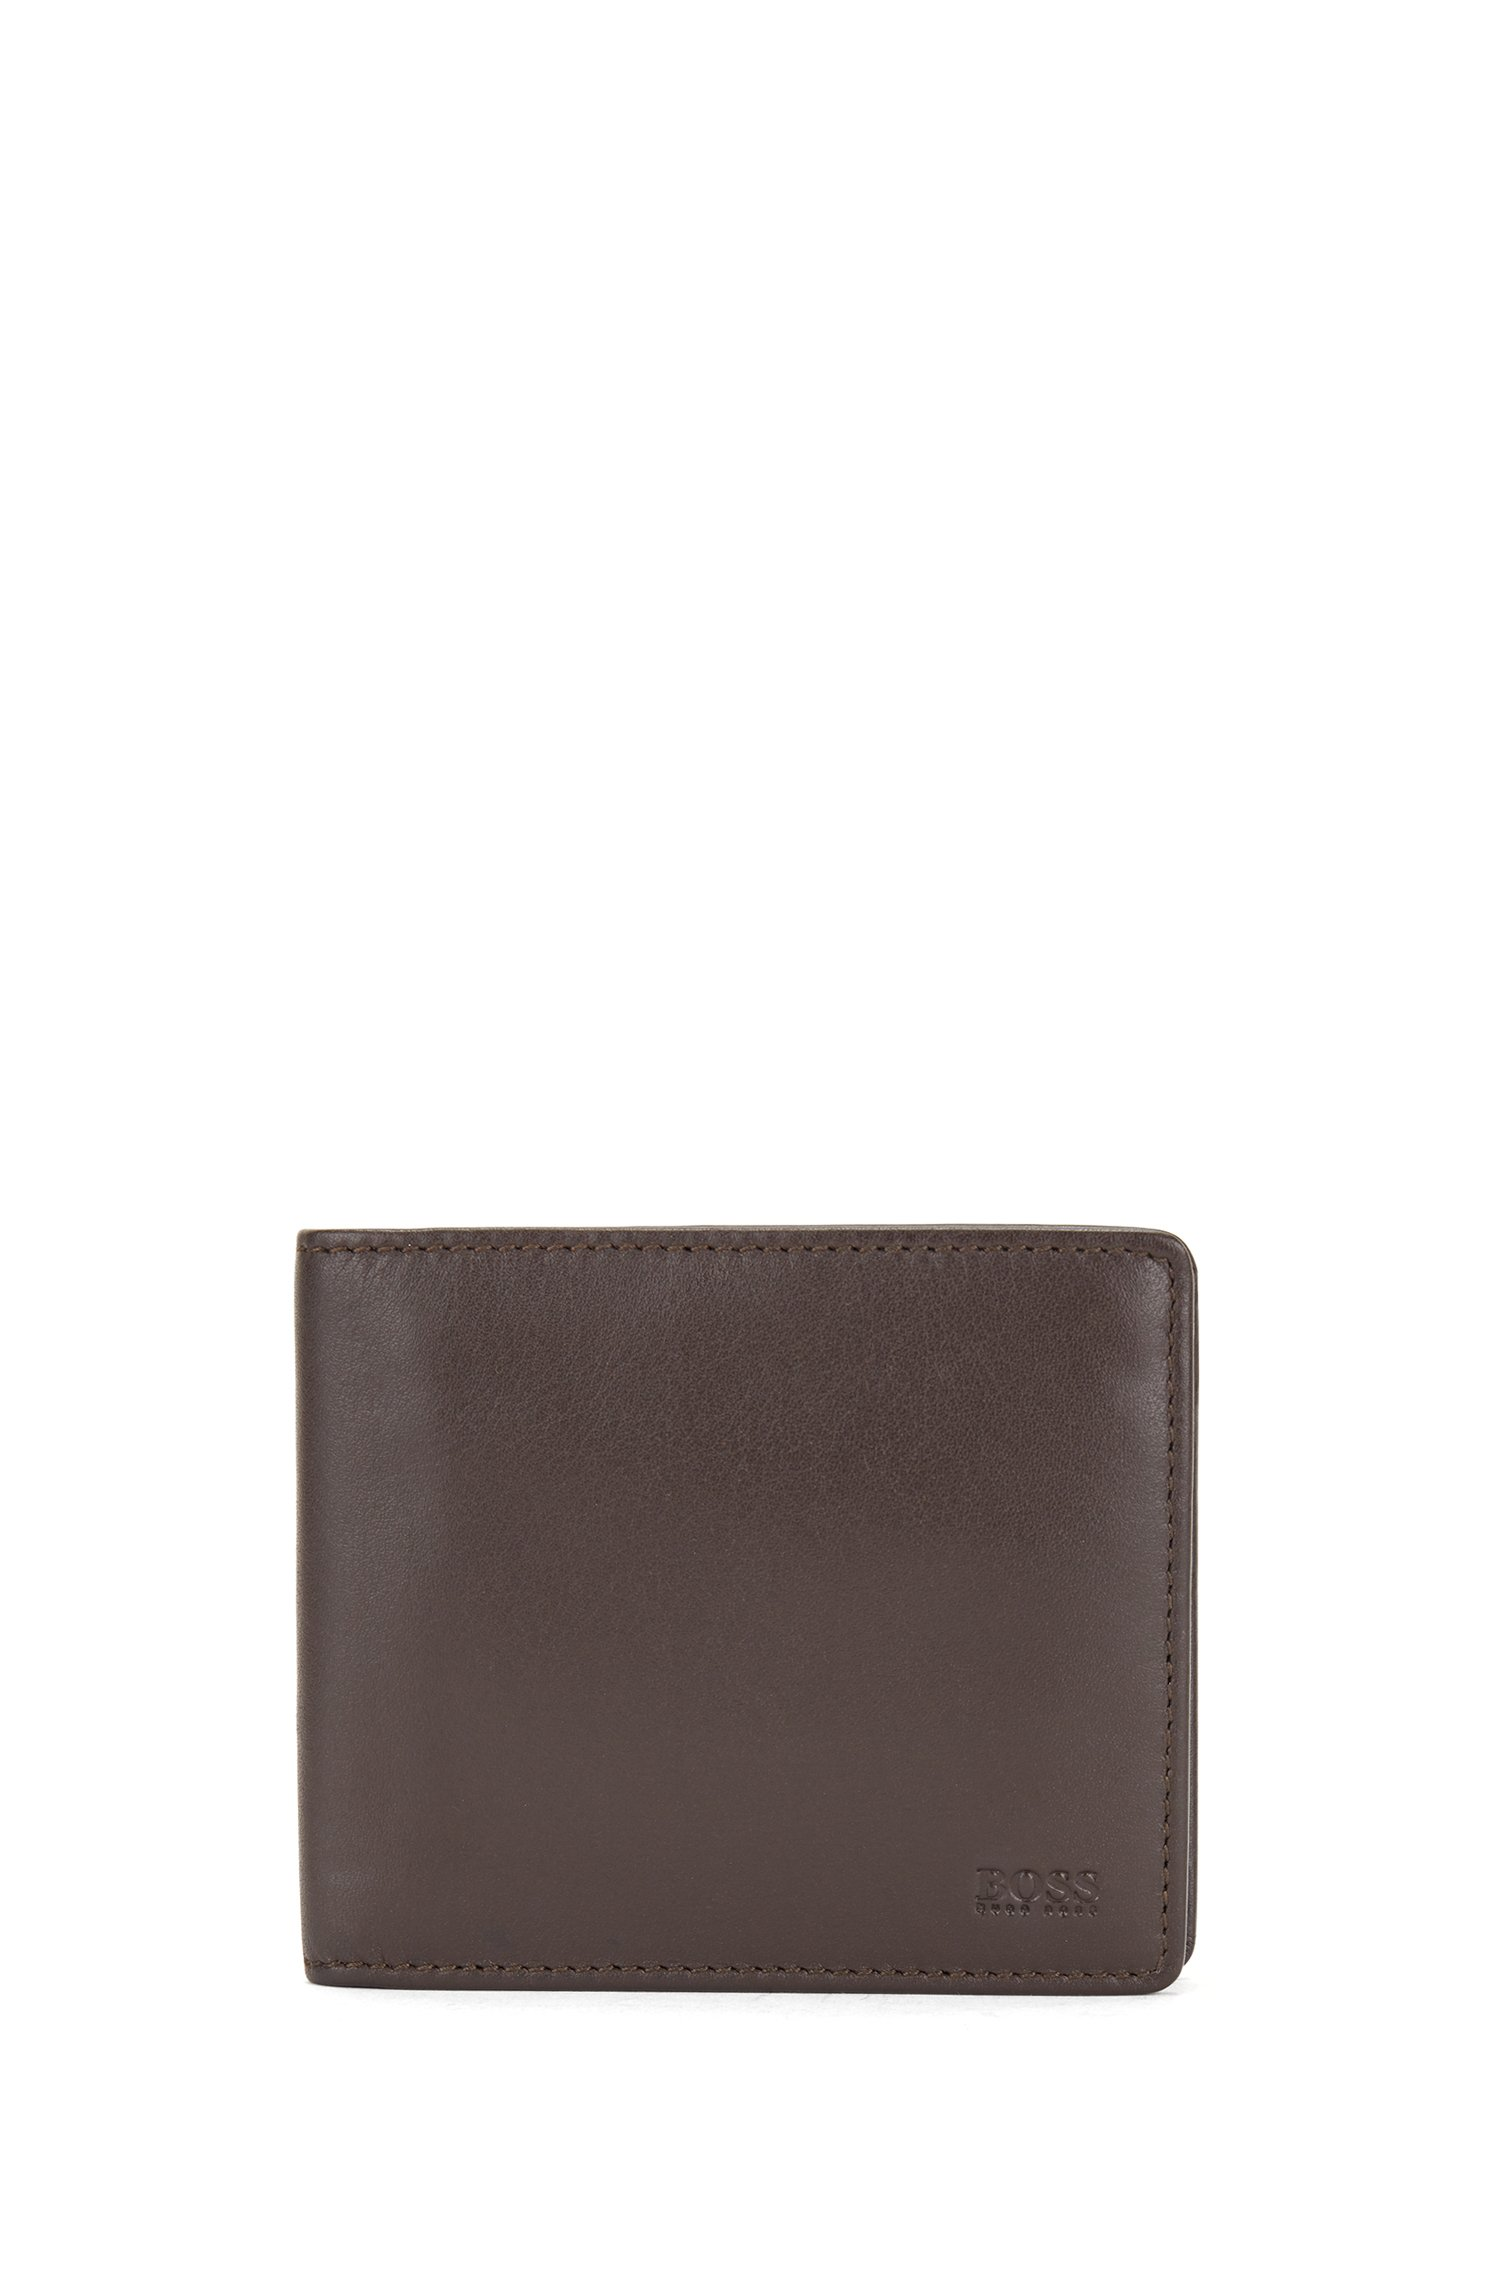 Billfold wallet in nappa leather with coin pocket, Dark Brown